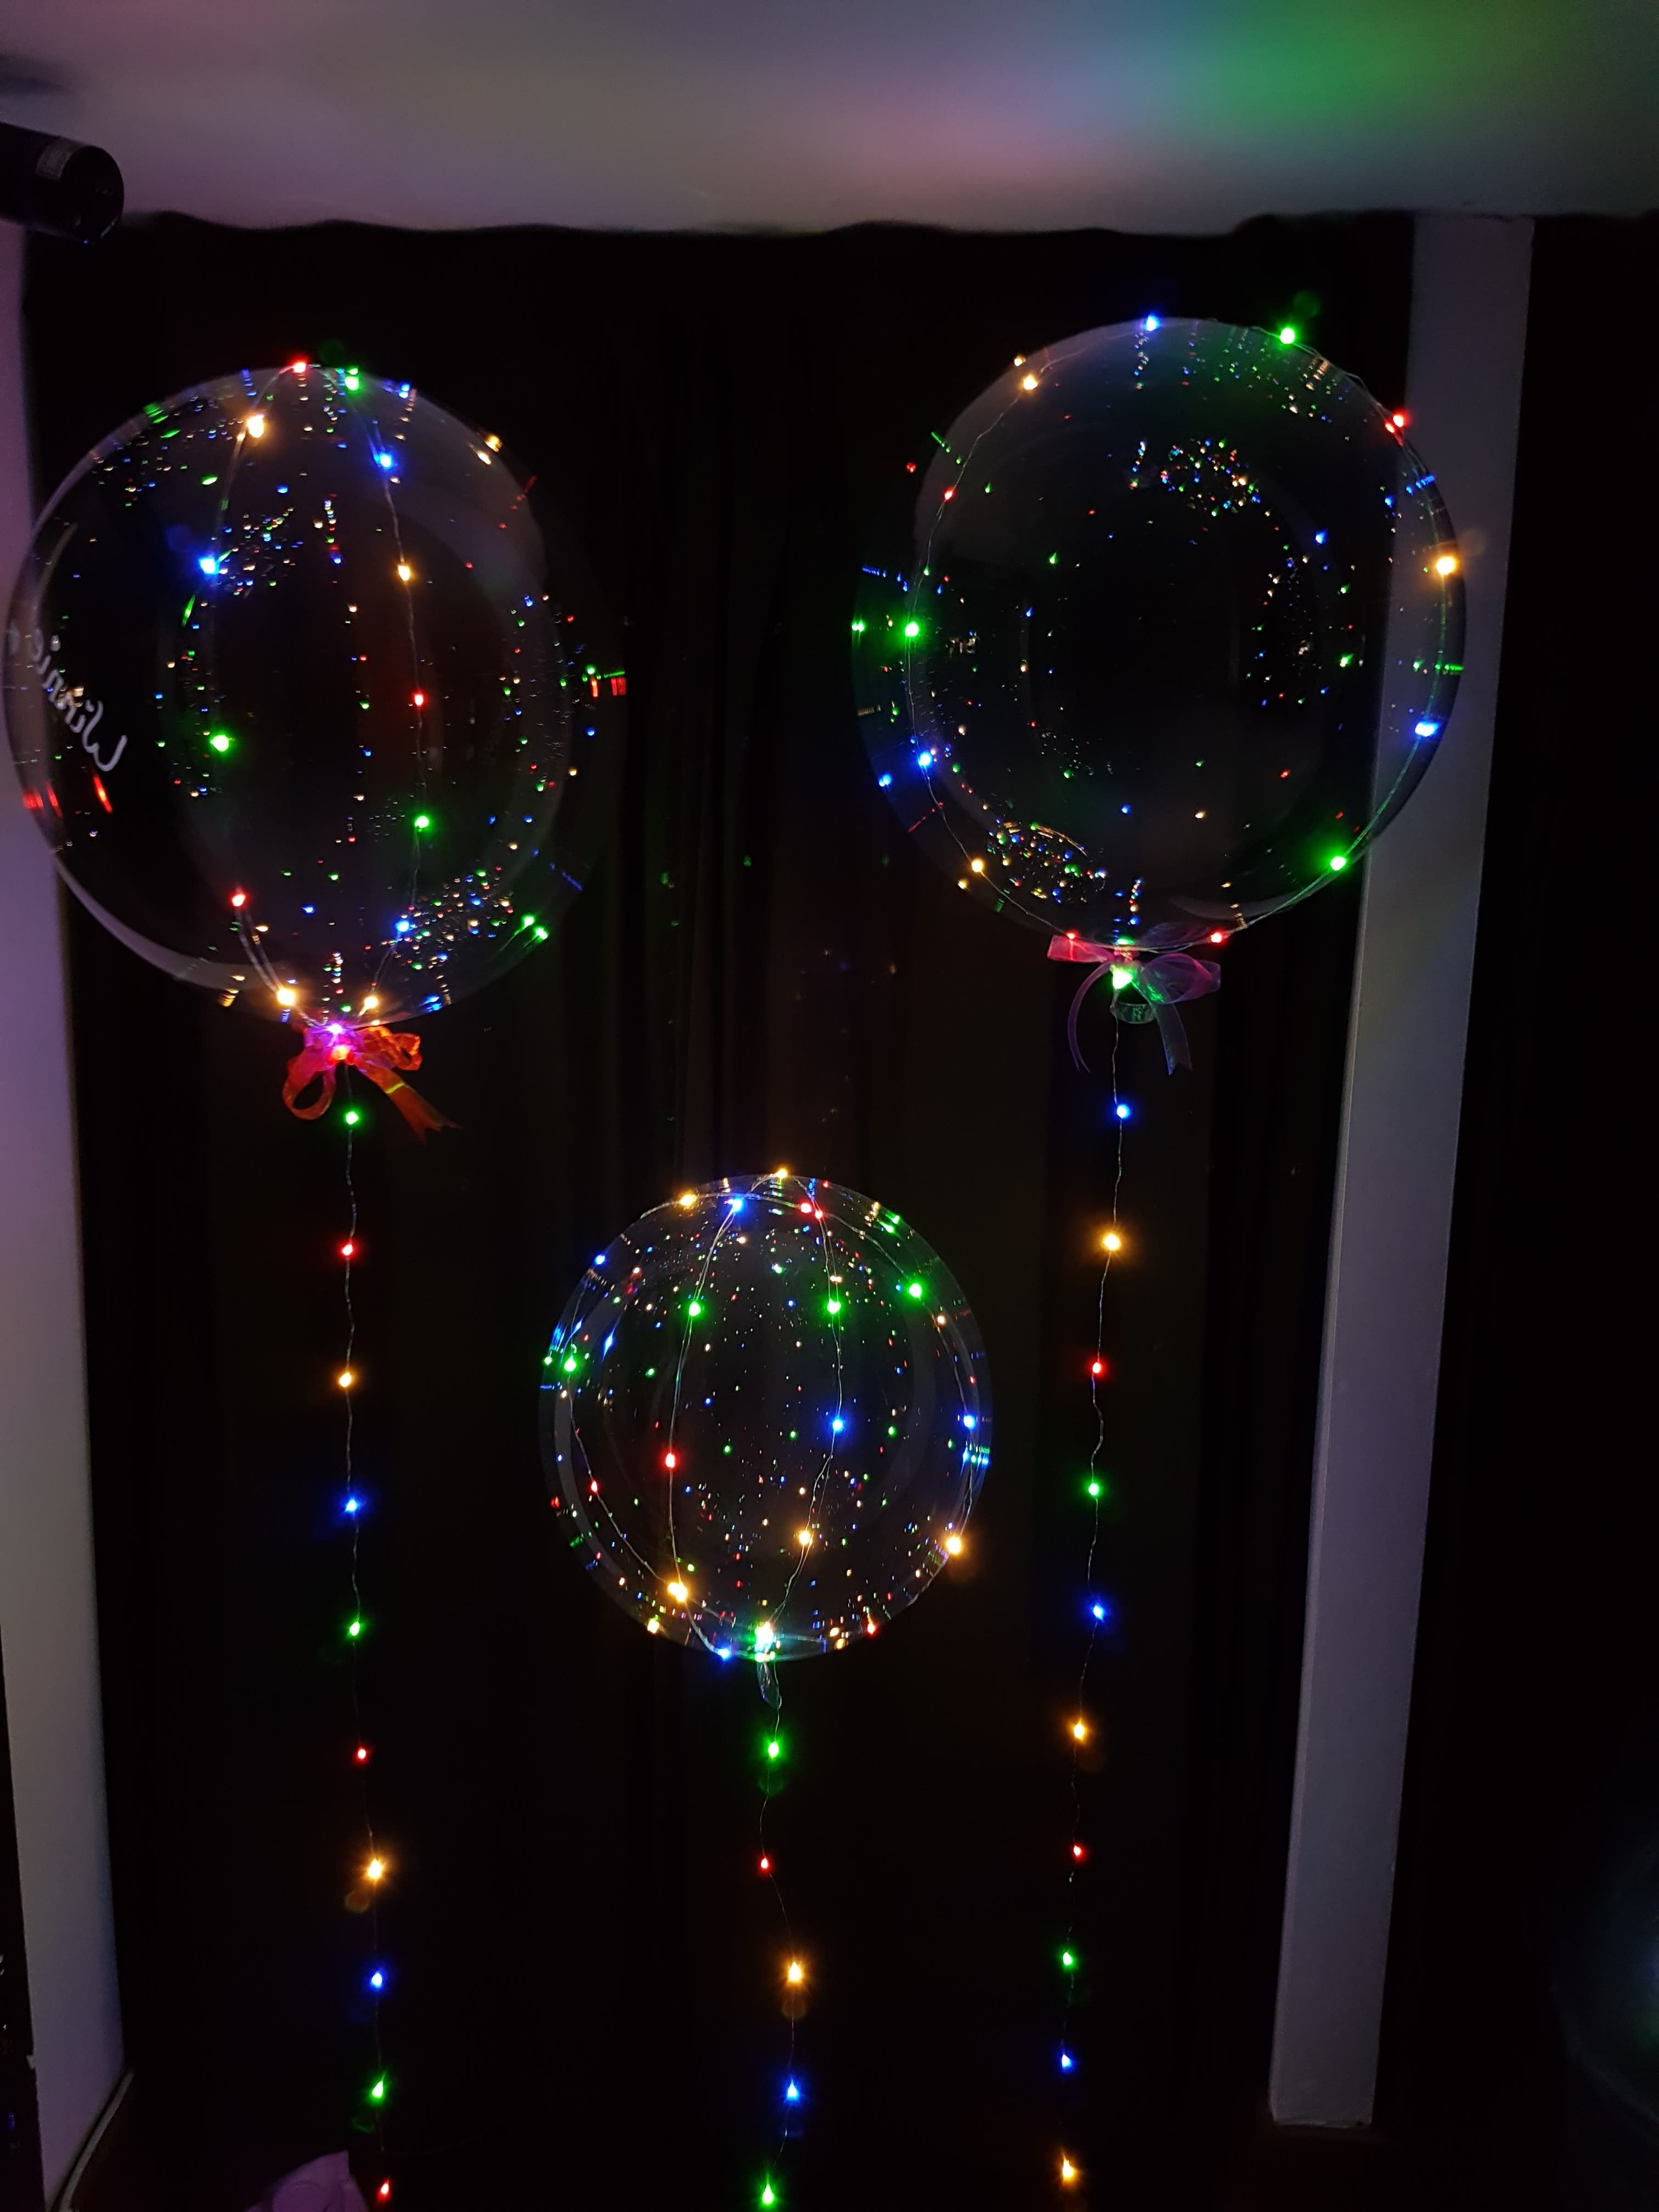 awesome new LED bubble balloons come with